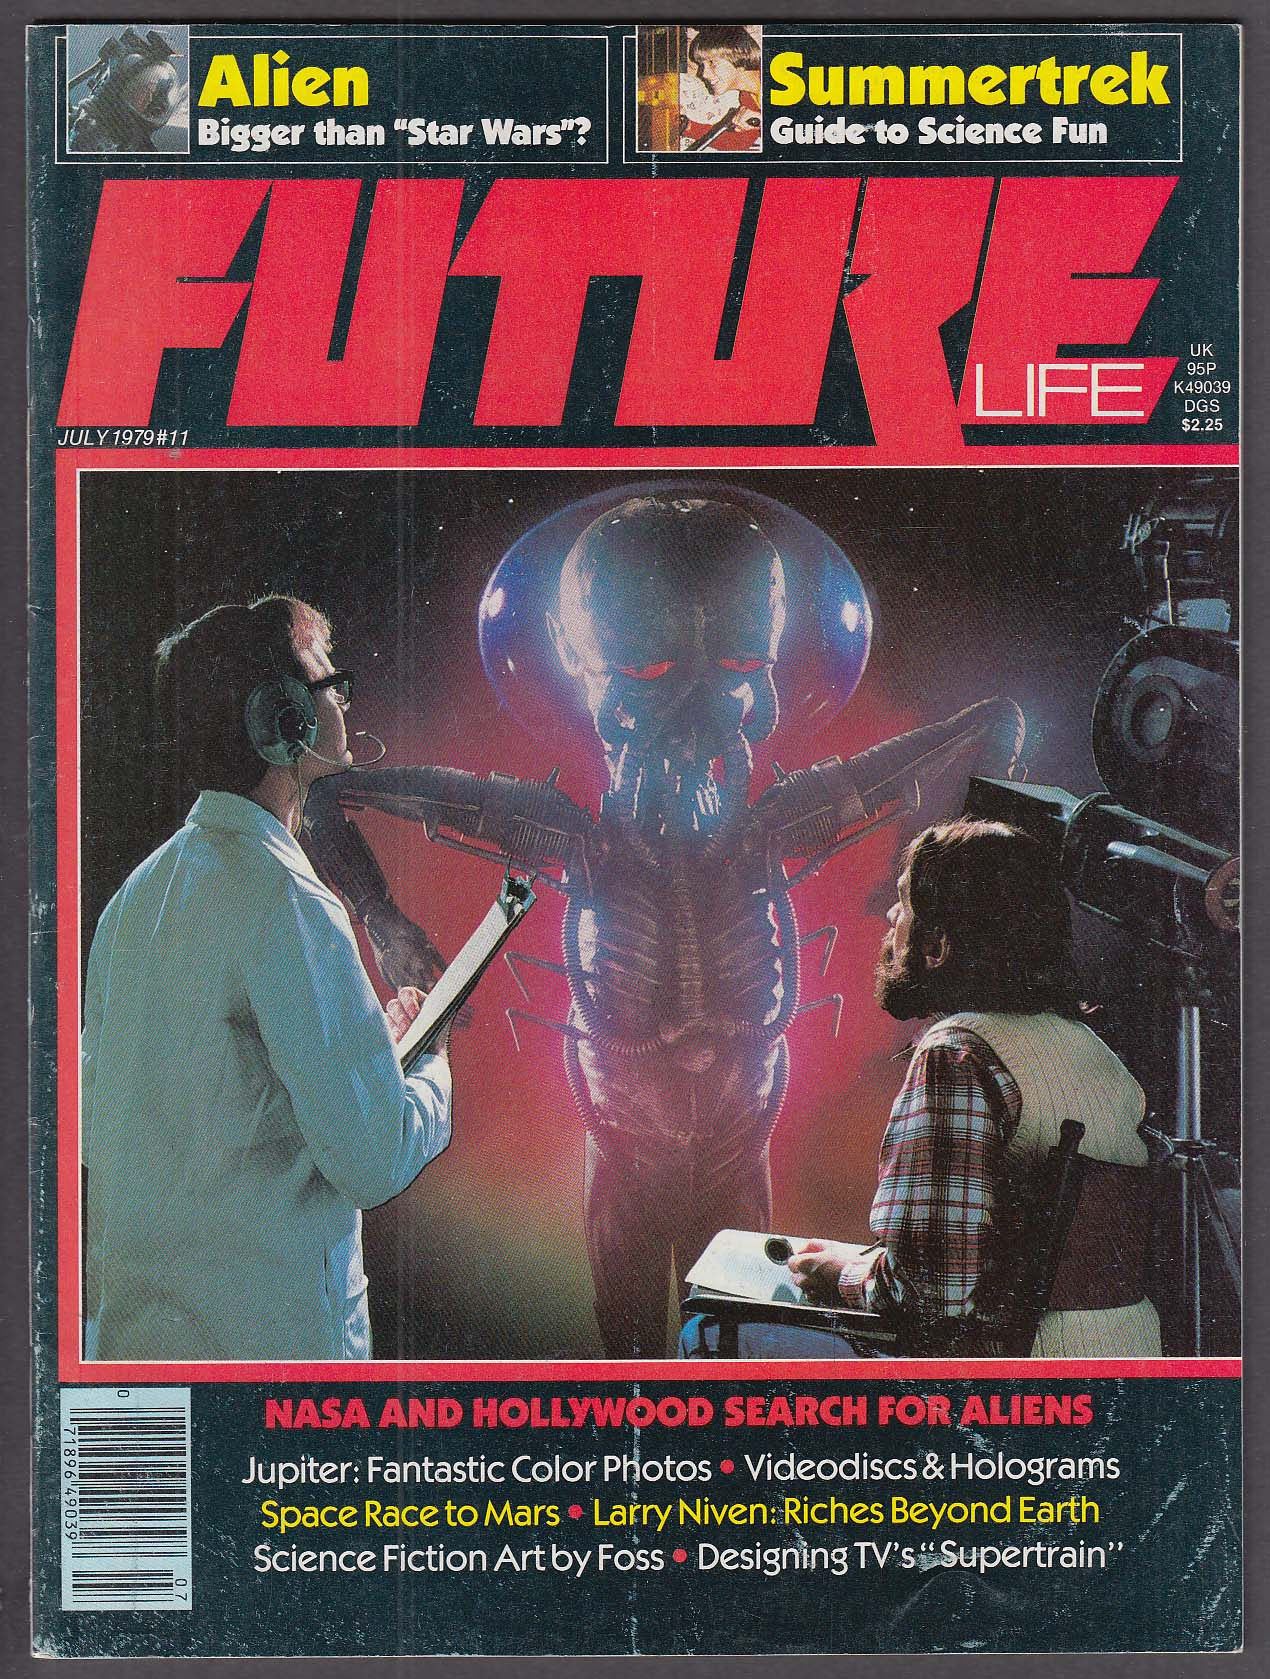 Image for FUTURE LIFE #11 Alien SETA Summertrek NASA Jupiter photos Foss art 7 1979